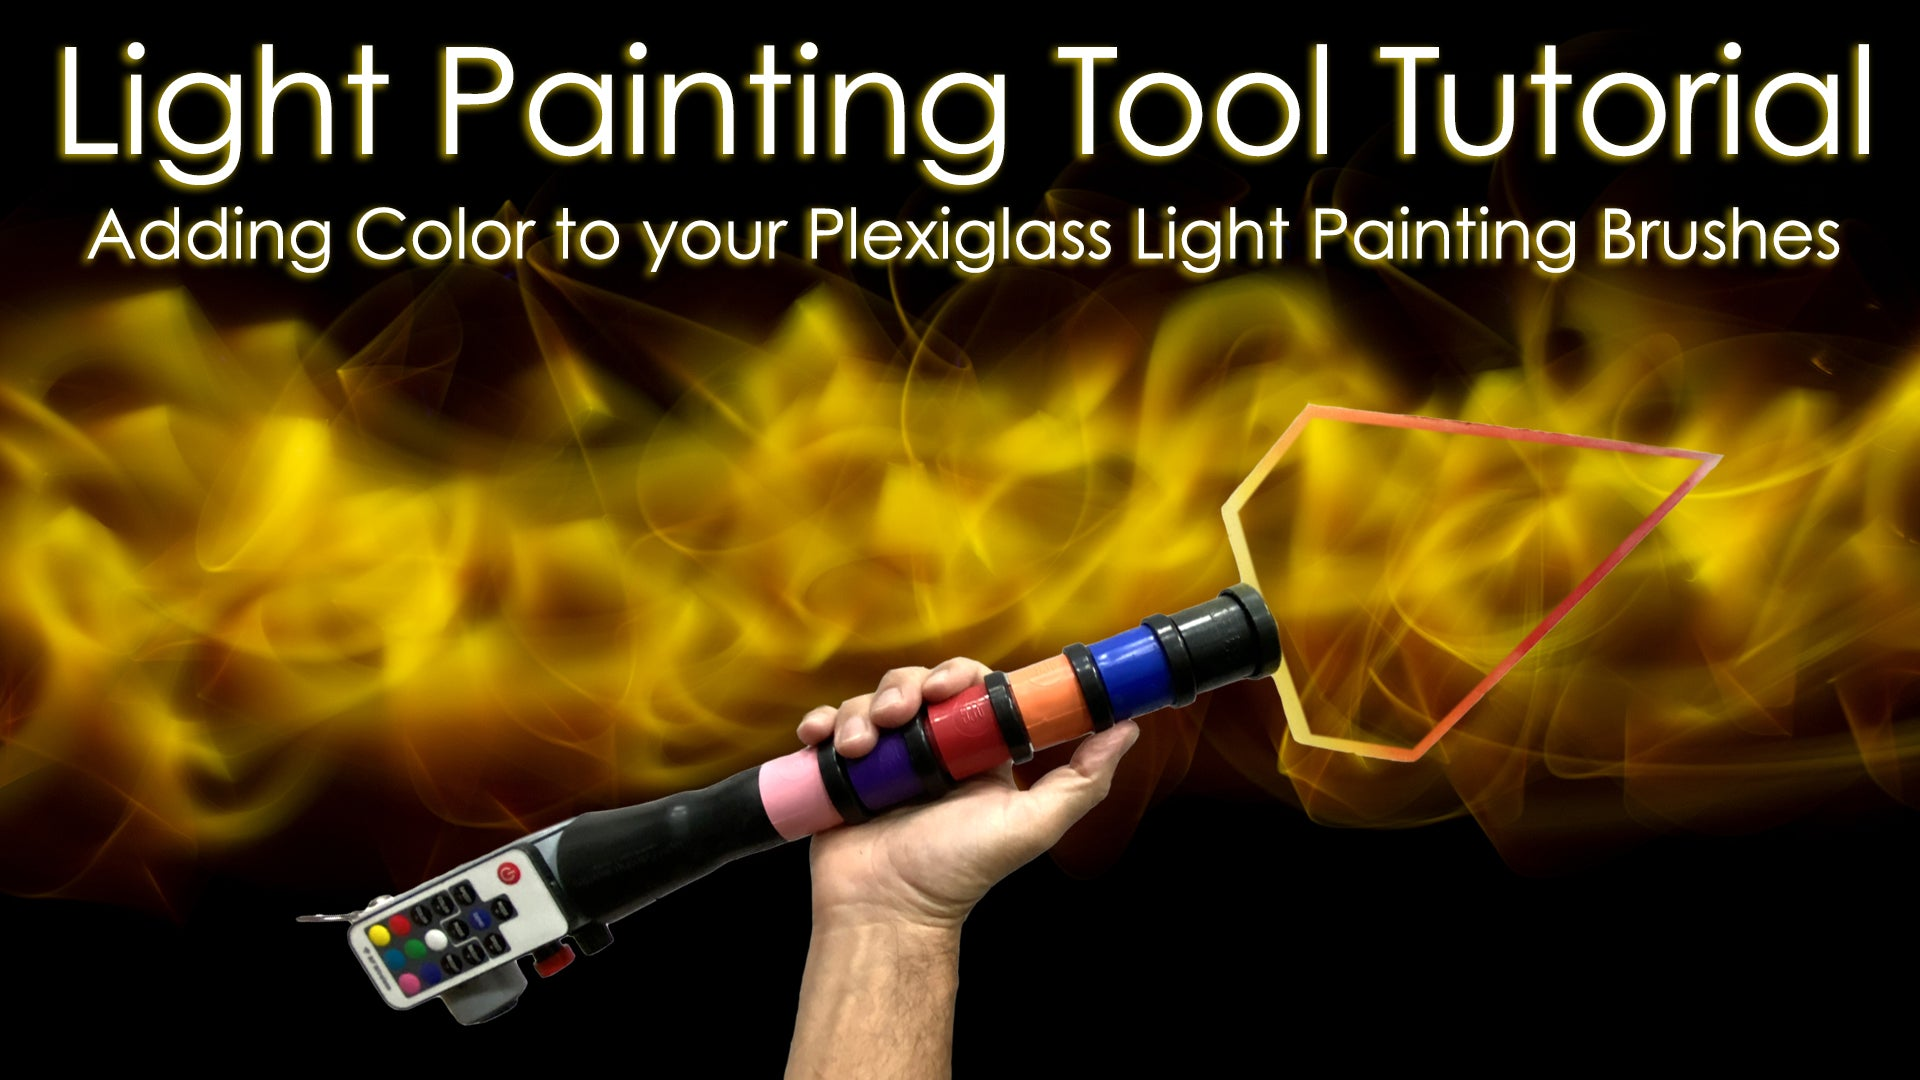 Light Painting Plexiglass Tool Tutorial